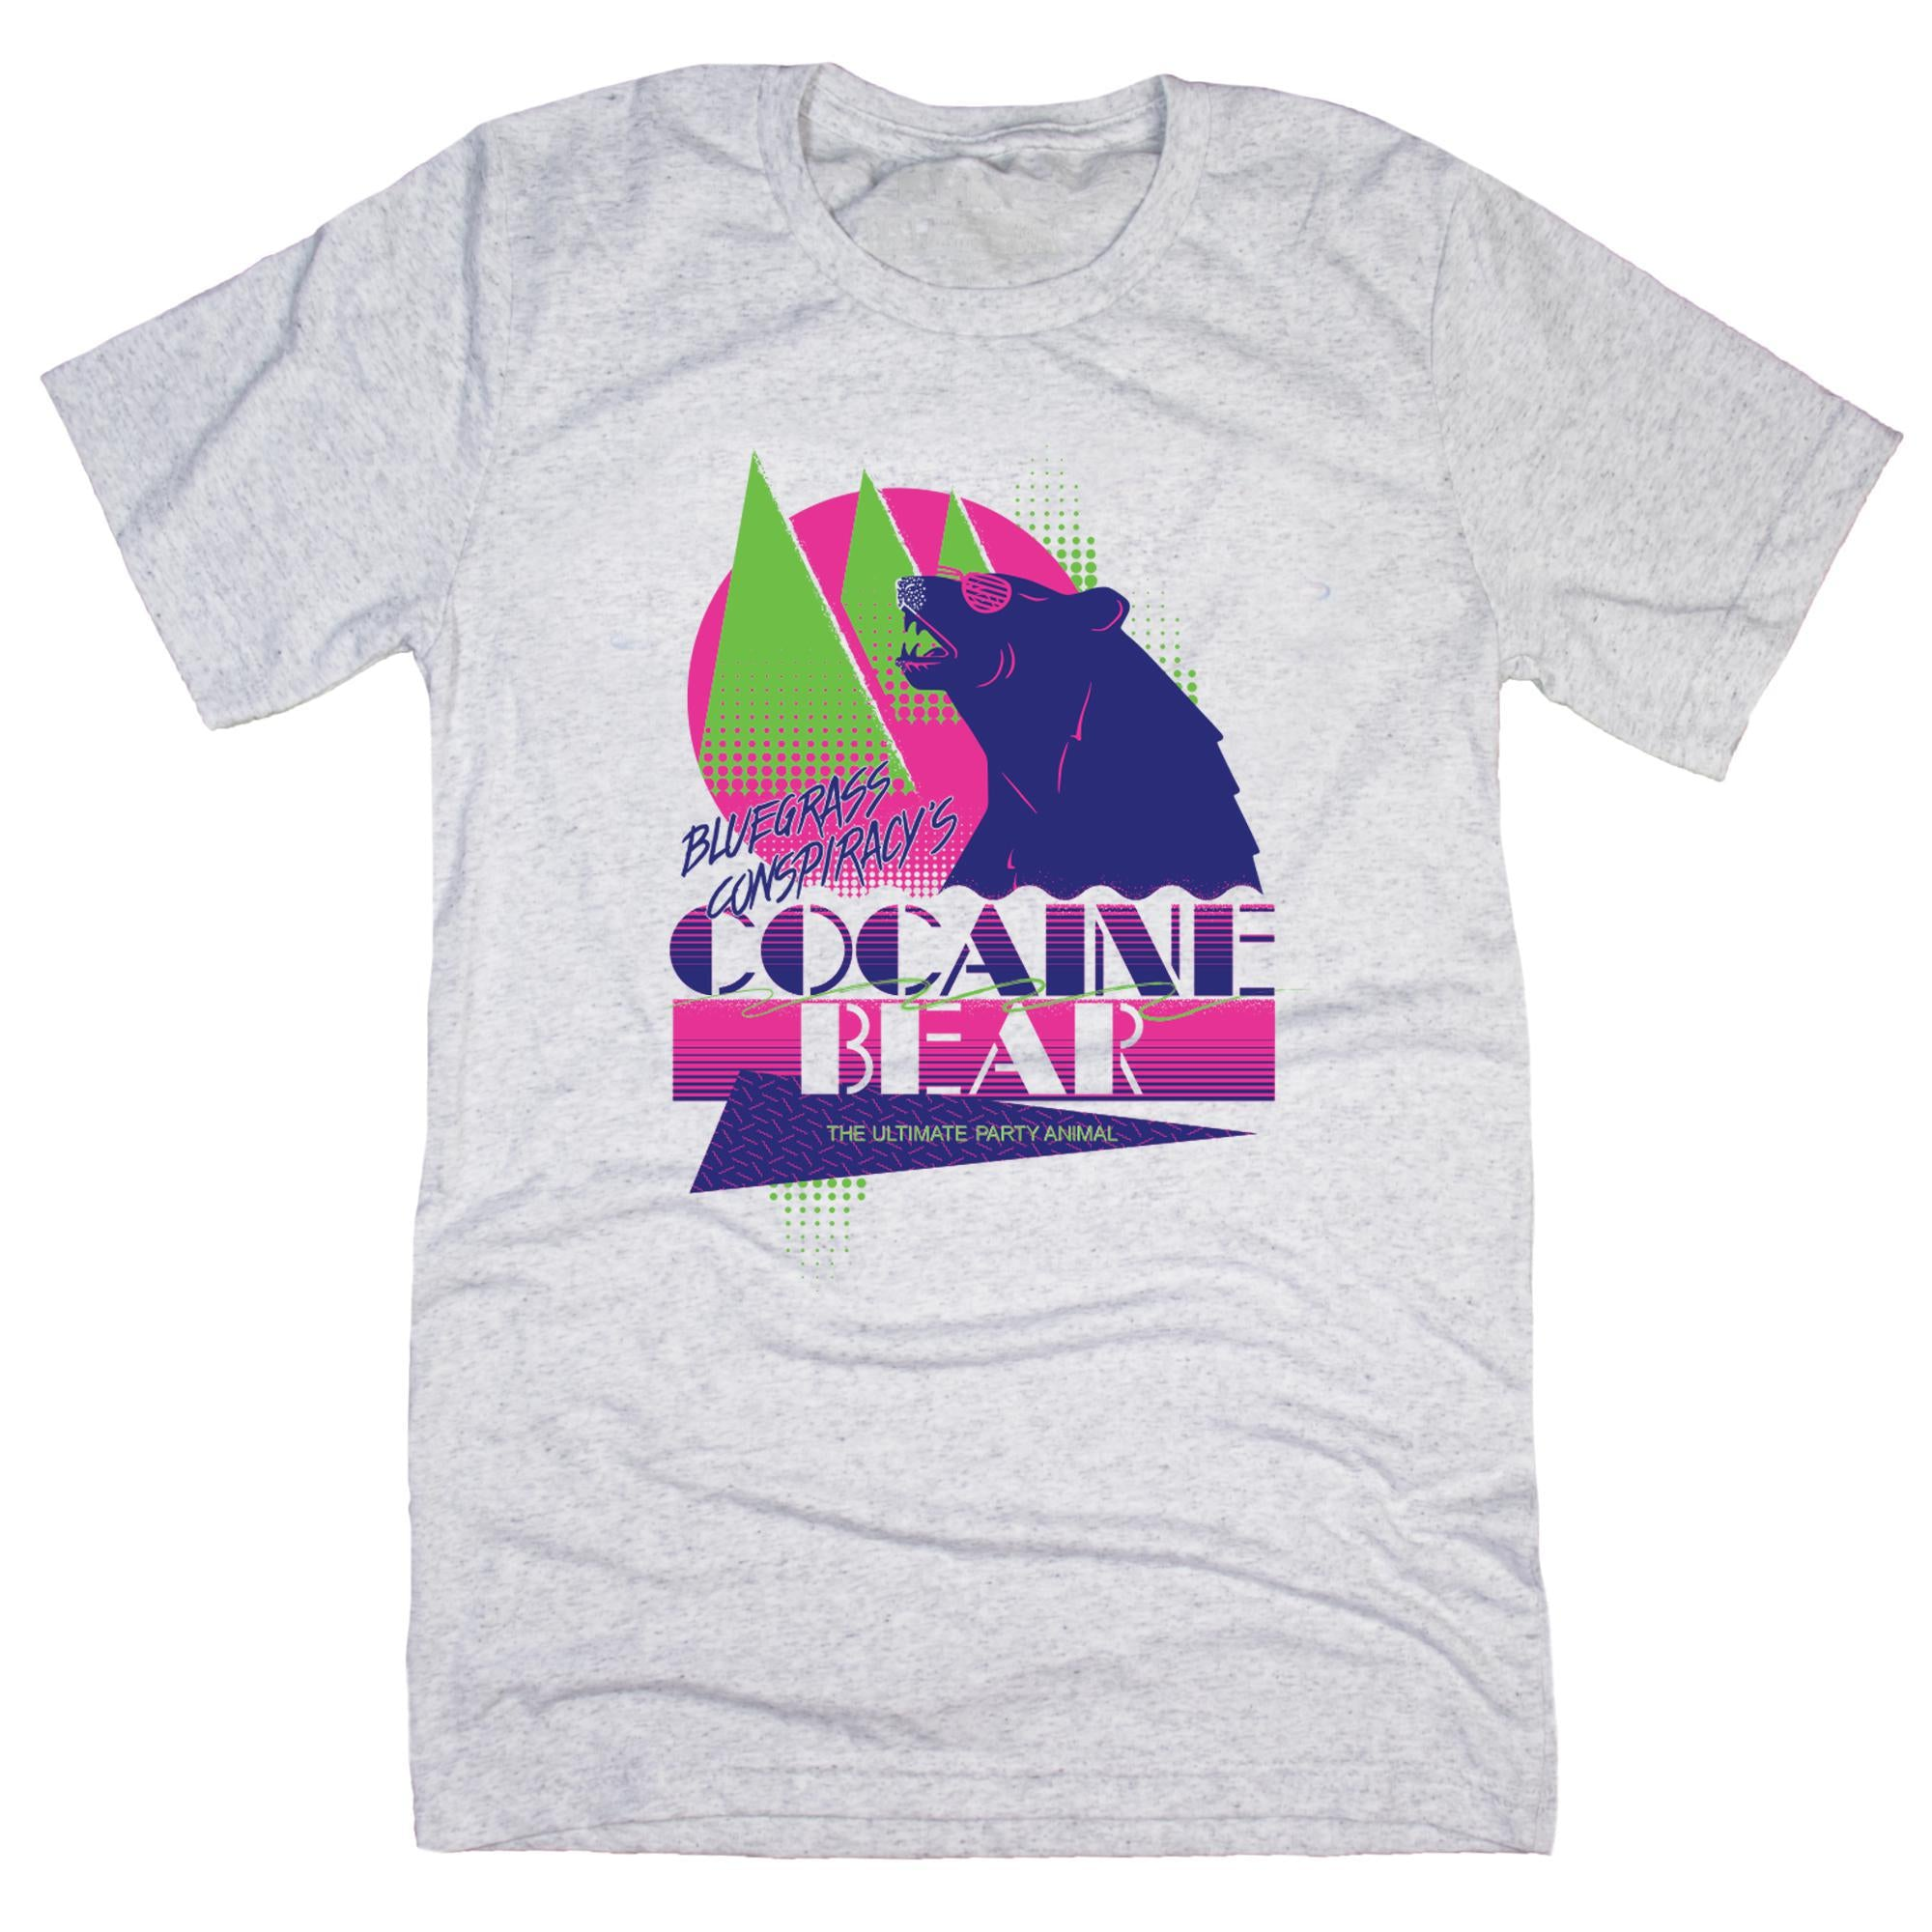 Cocaine Bear: The Ultimate Party Animal T-Shirt-T-Shirt-KY for KY Store